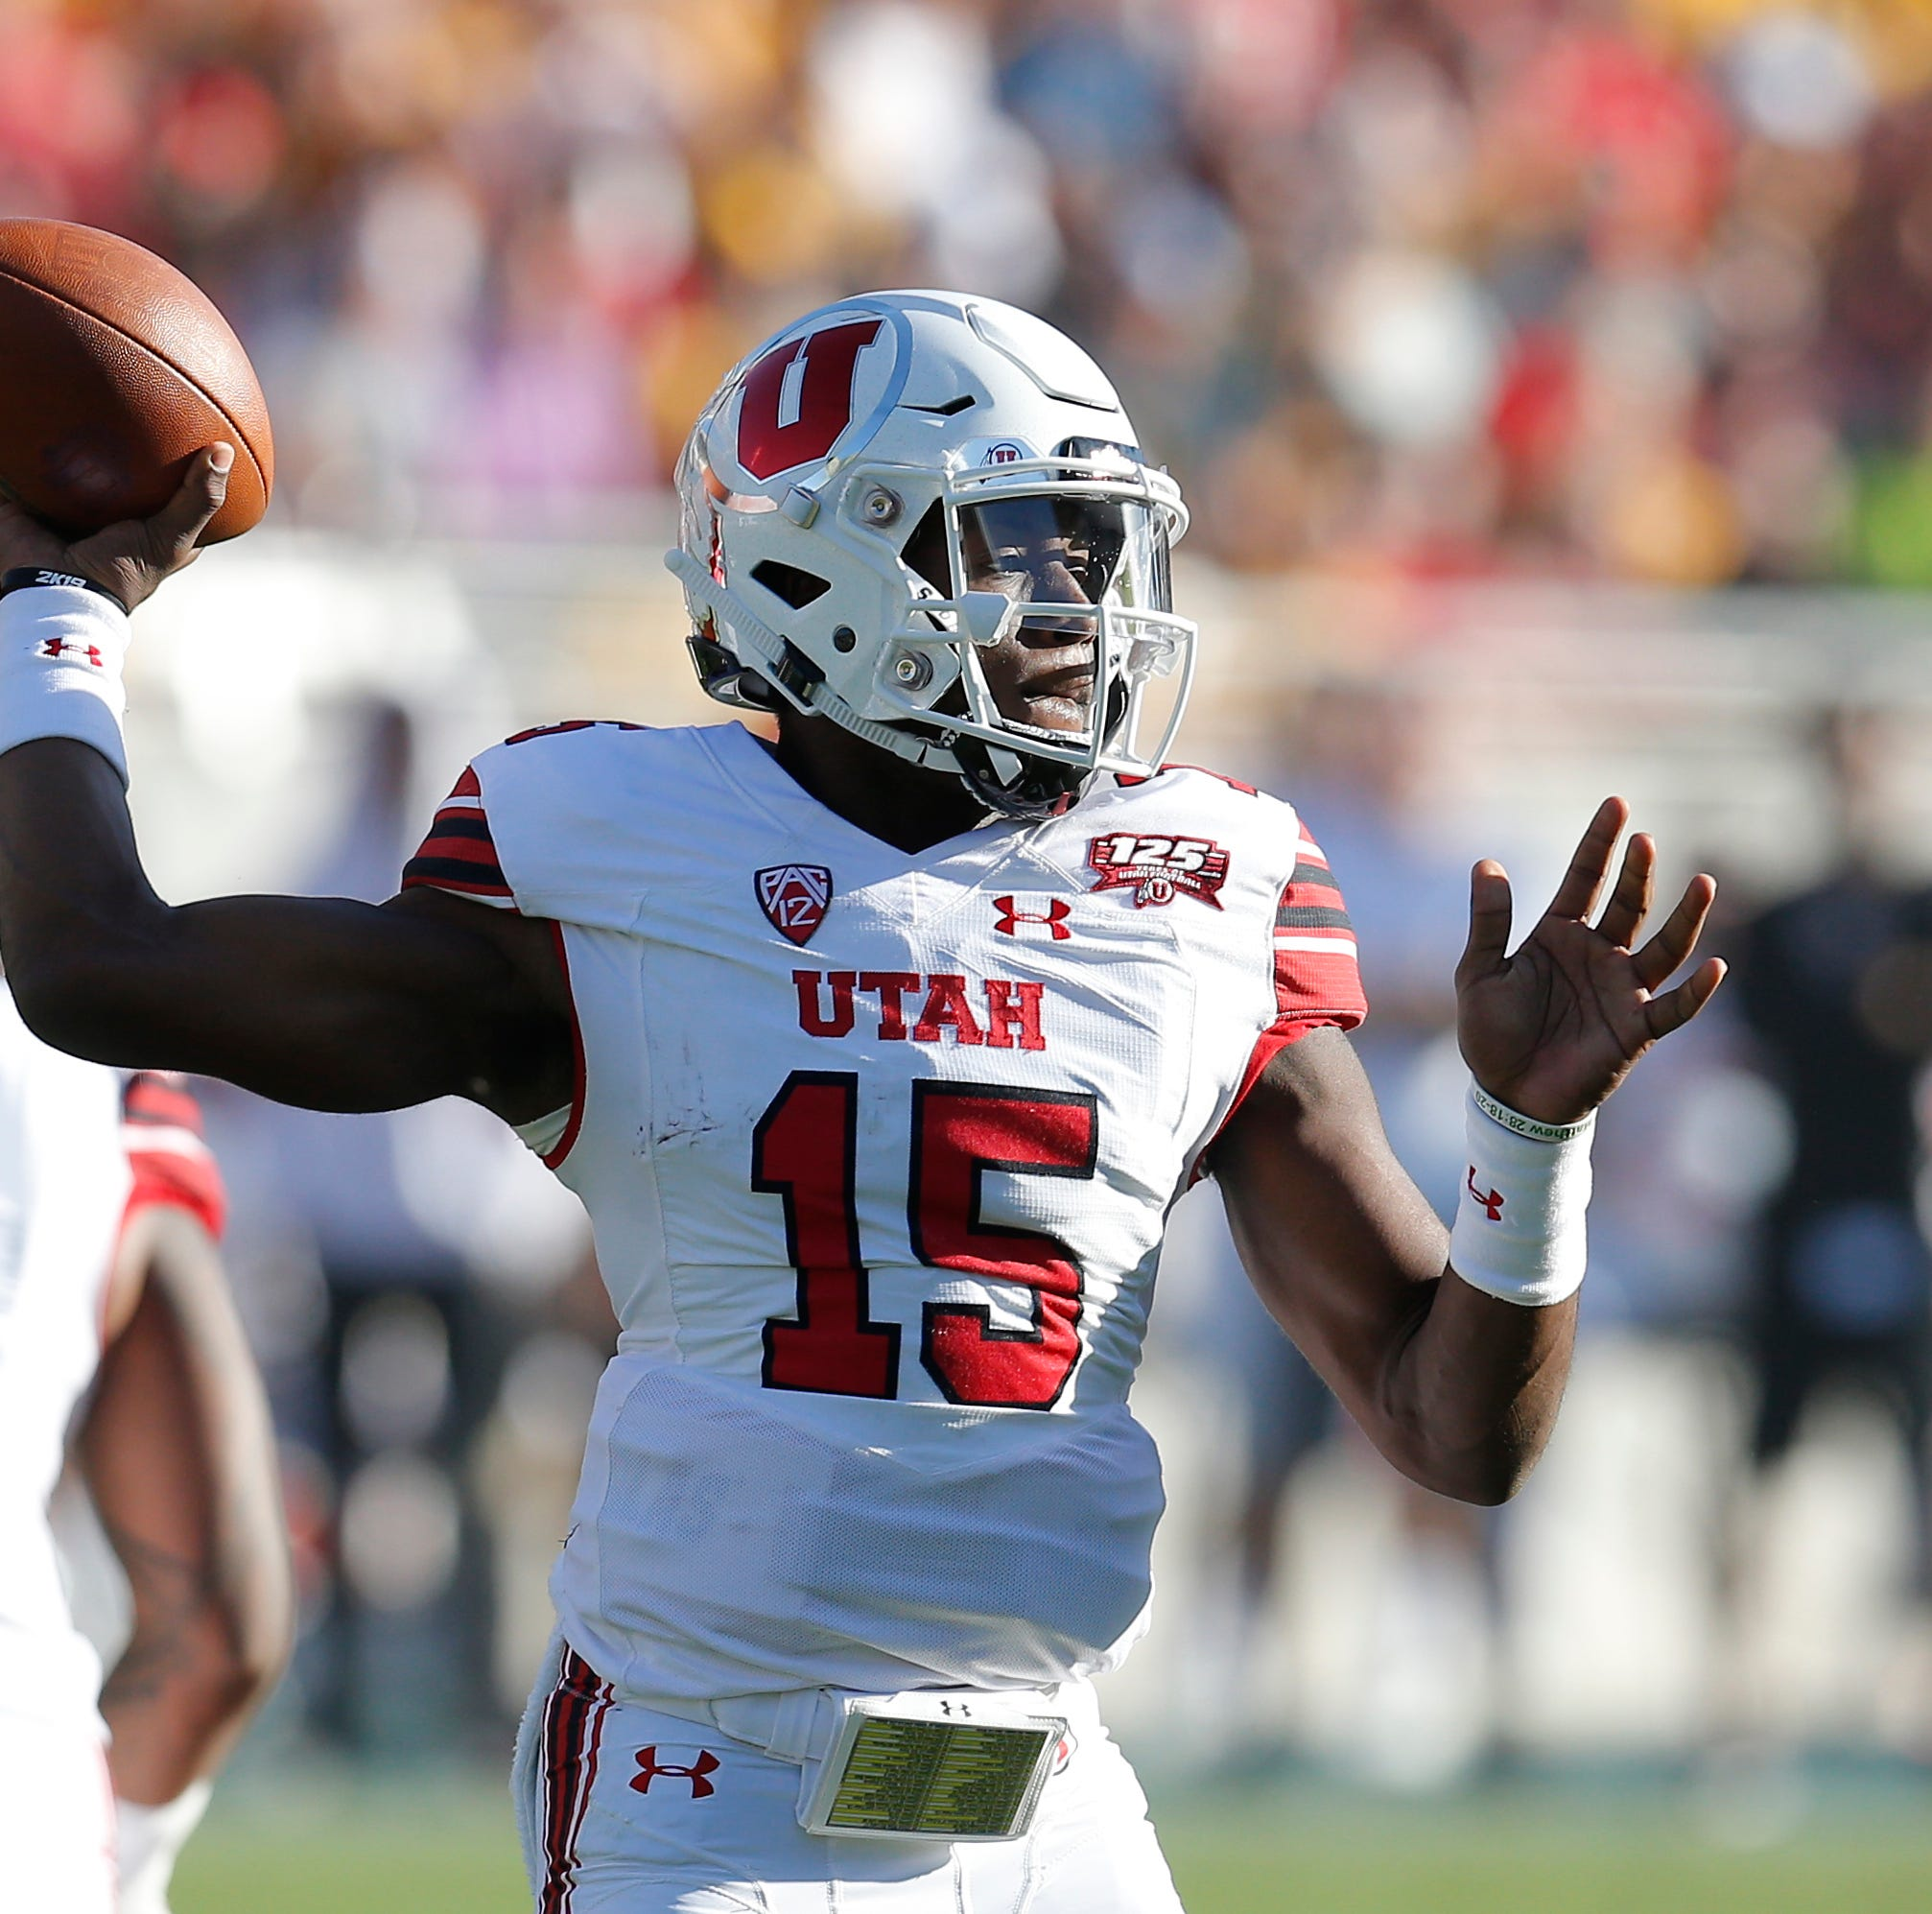 Utah will debut new starting quarterback against Oregon